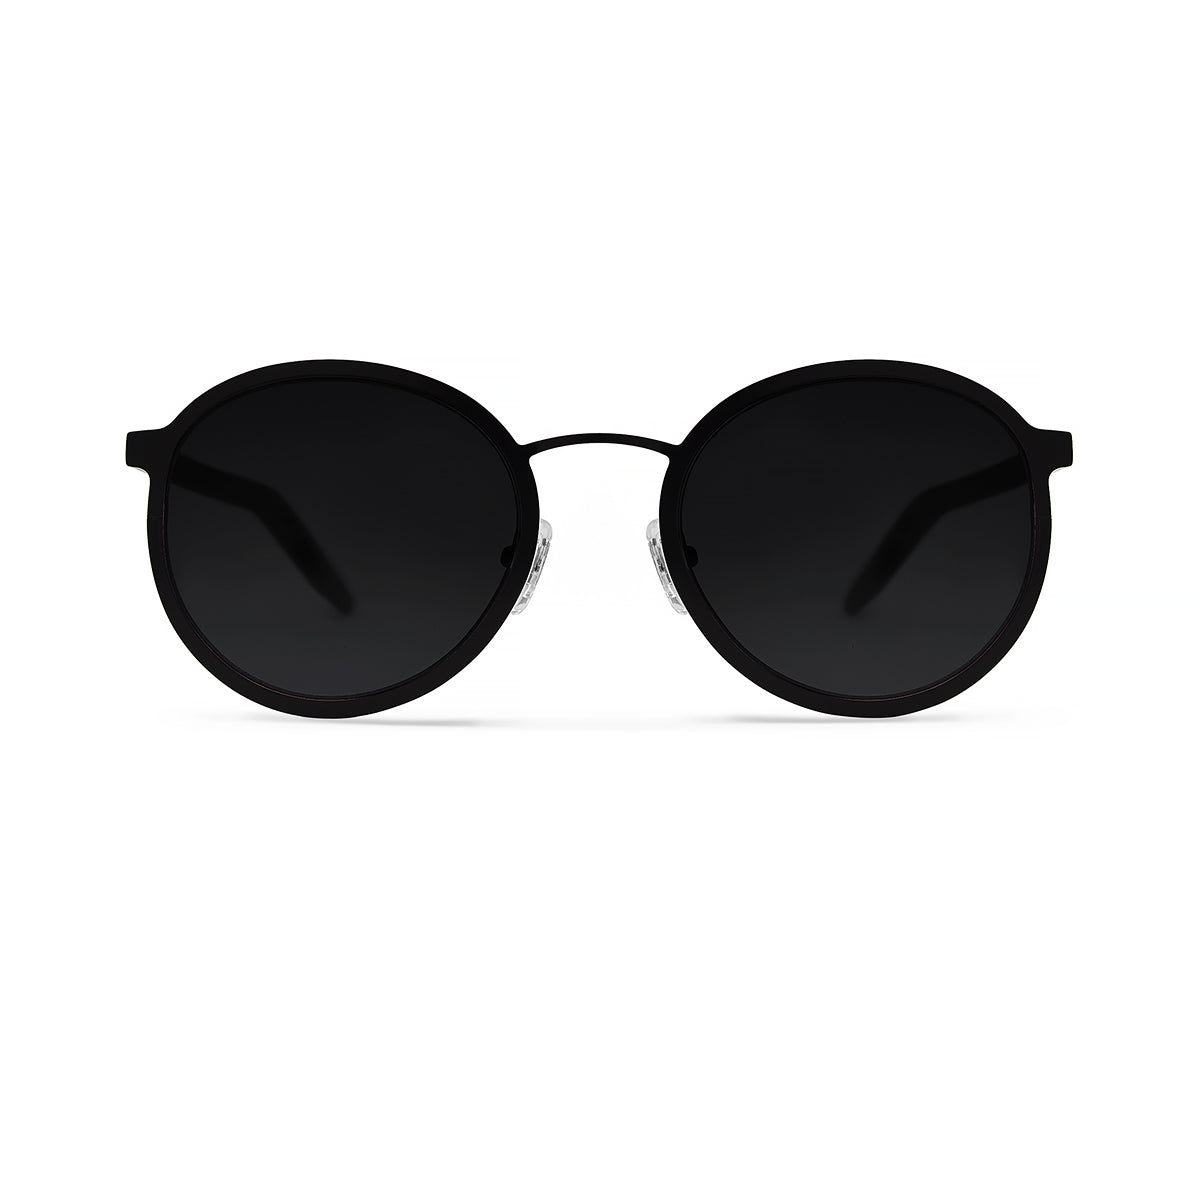 Metal / Horn. Matte Black / Dark. Black Lens. - BLYSZAK eyewear eyewear - eyewear, optical, sunglasses